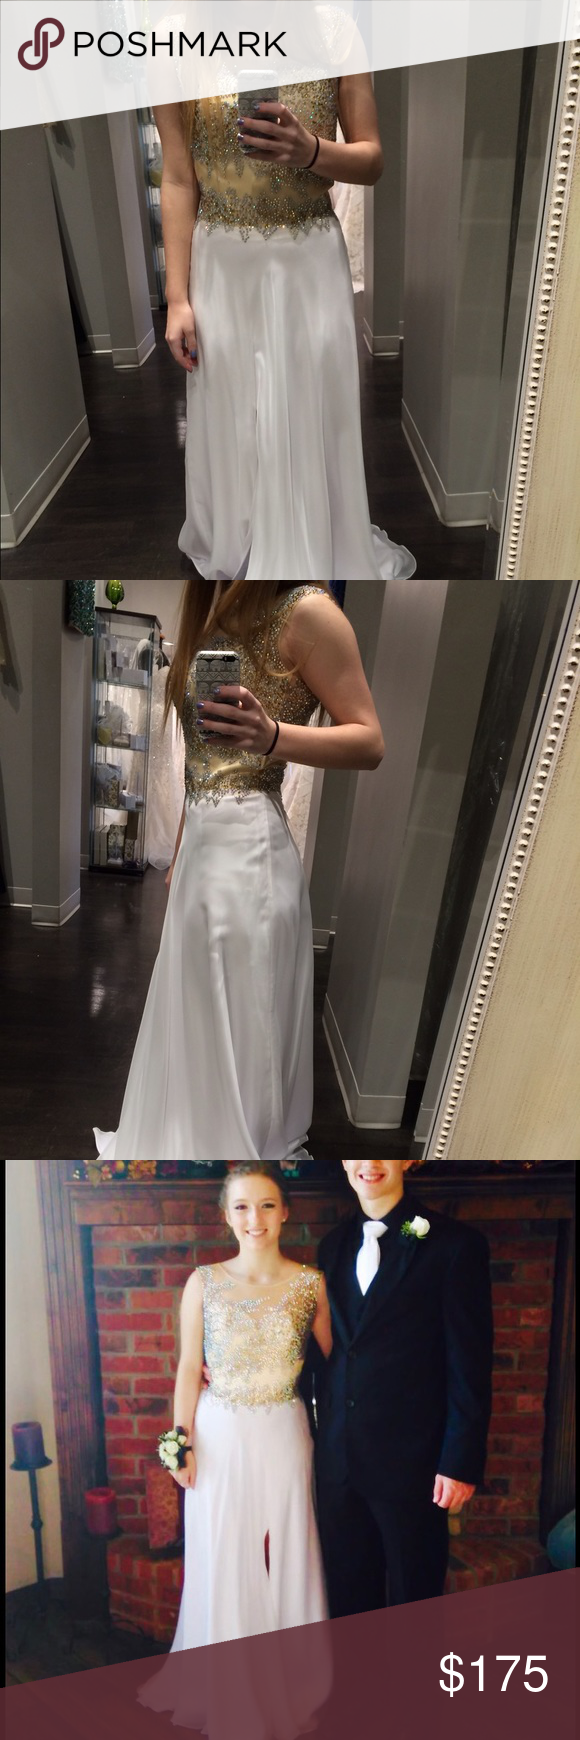 White and gold prom dress the dress is size but itus been